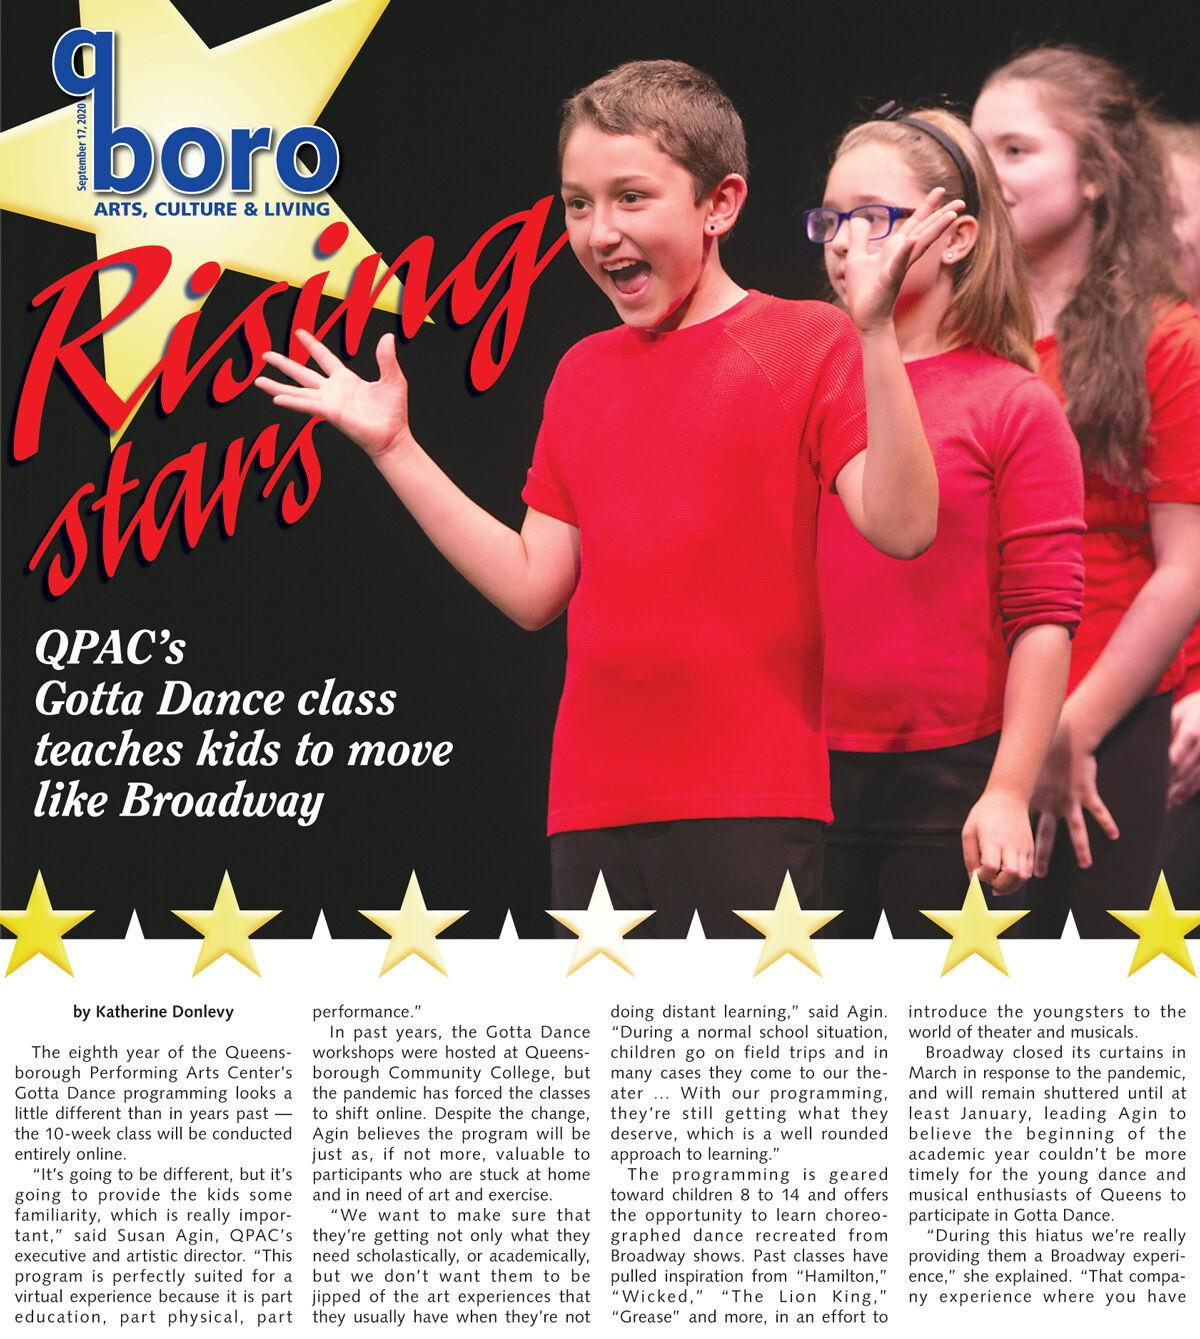 QPAC provides the Broadway melody for kids 1